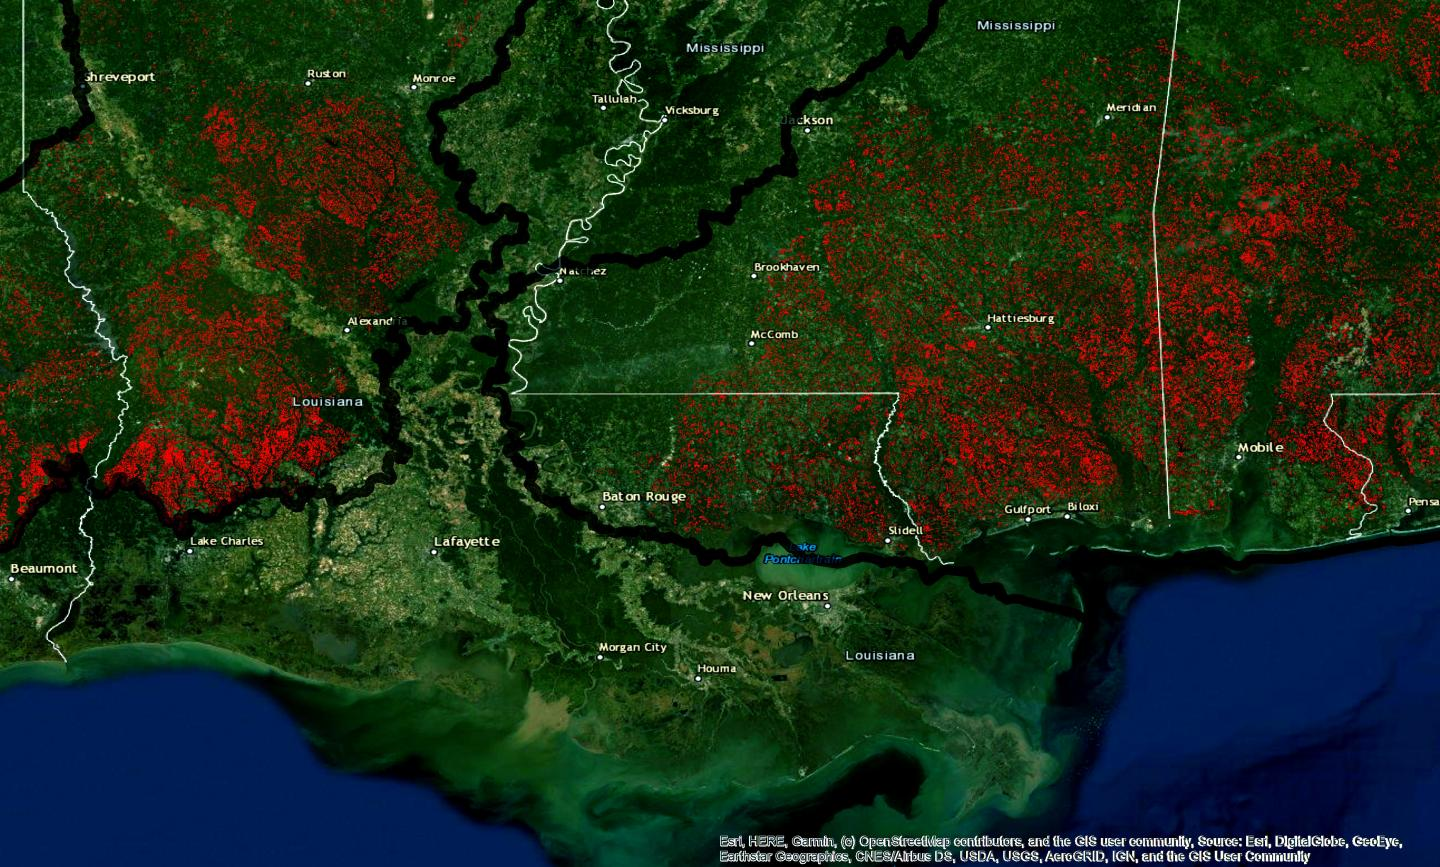 Habitat loss for the Red-cockaded woodpecker